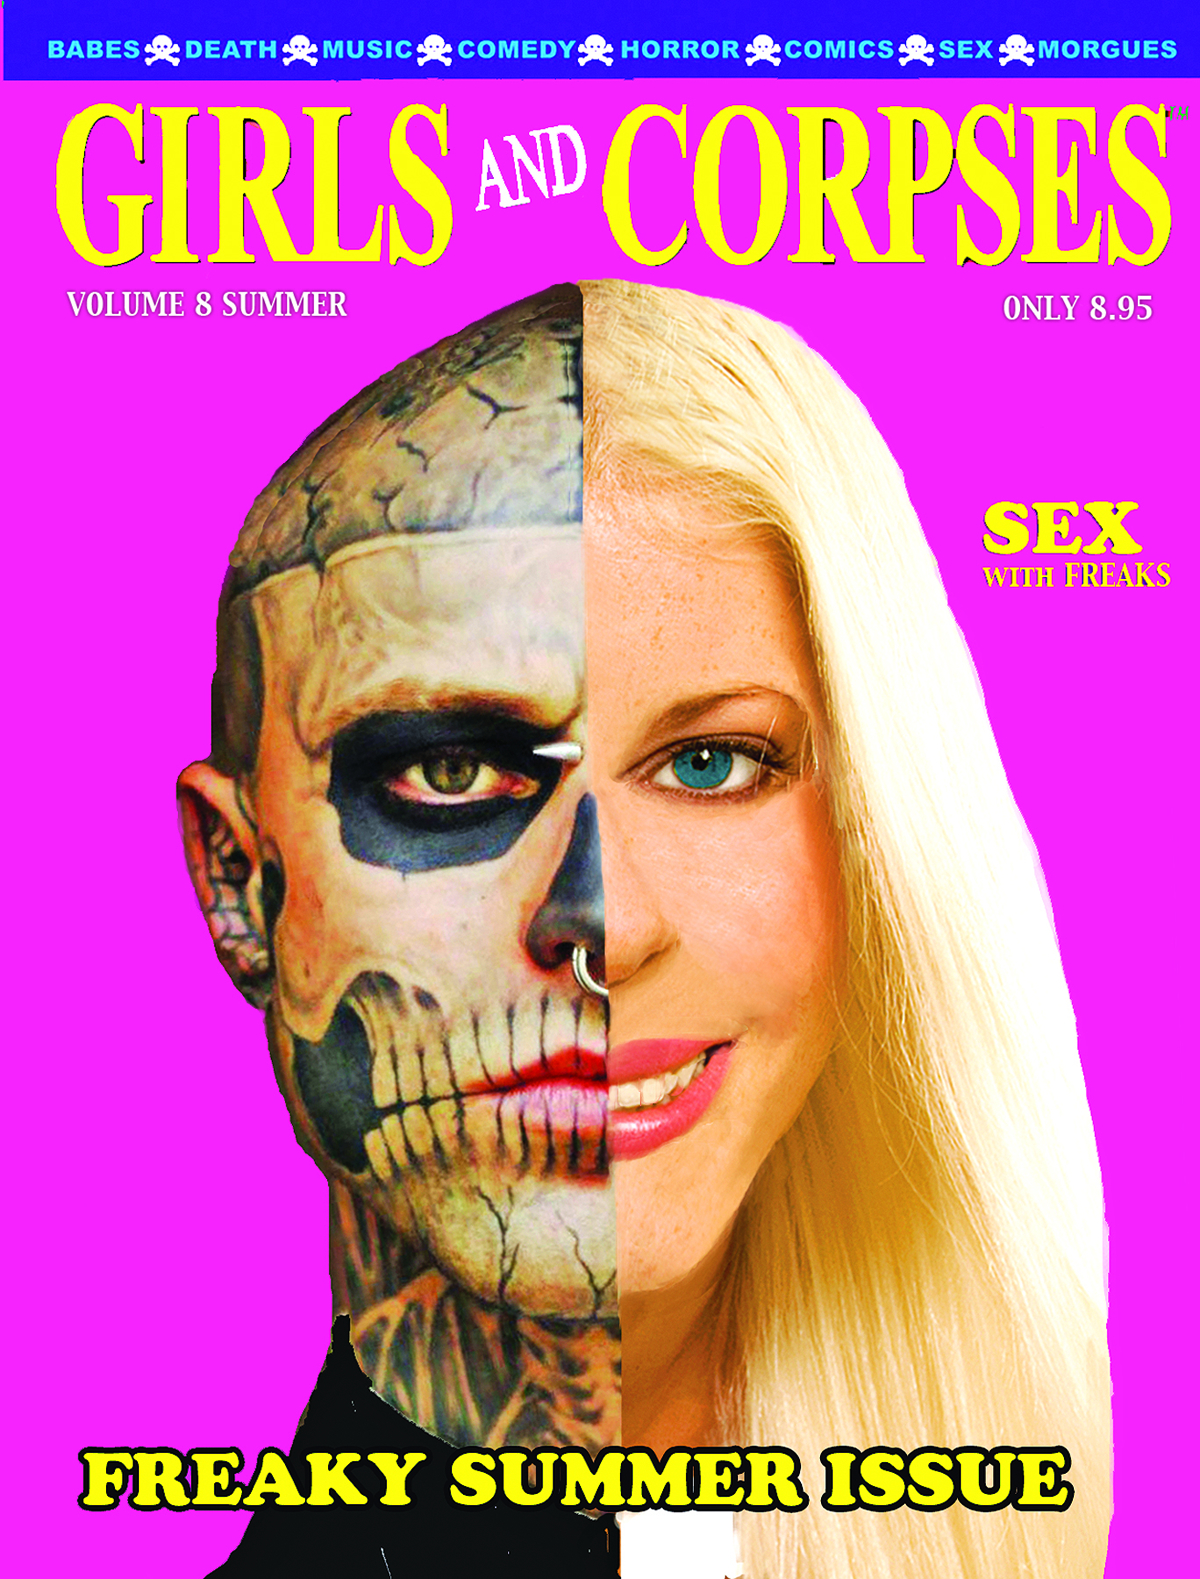 GIRLS AND CORPSES MAGAZINE SUMMER 2014 (MR)